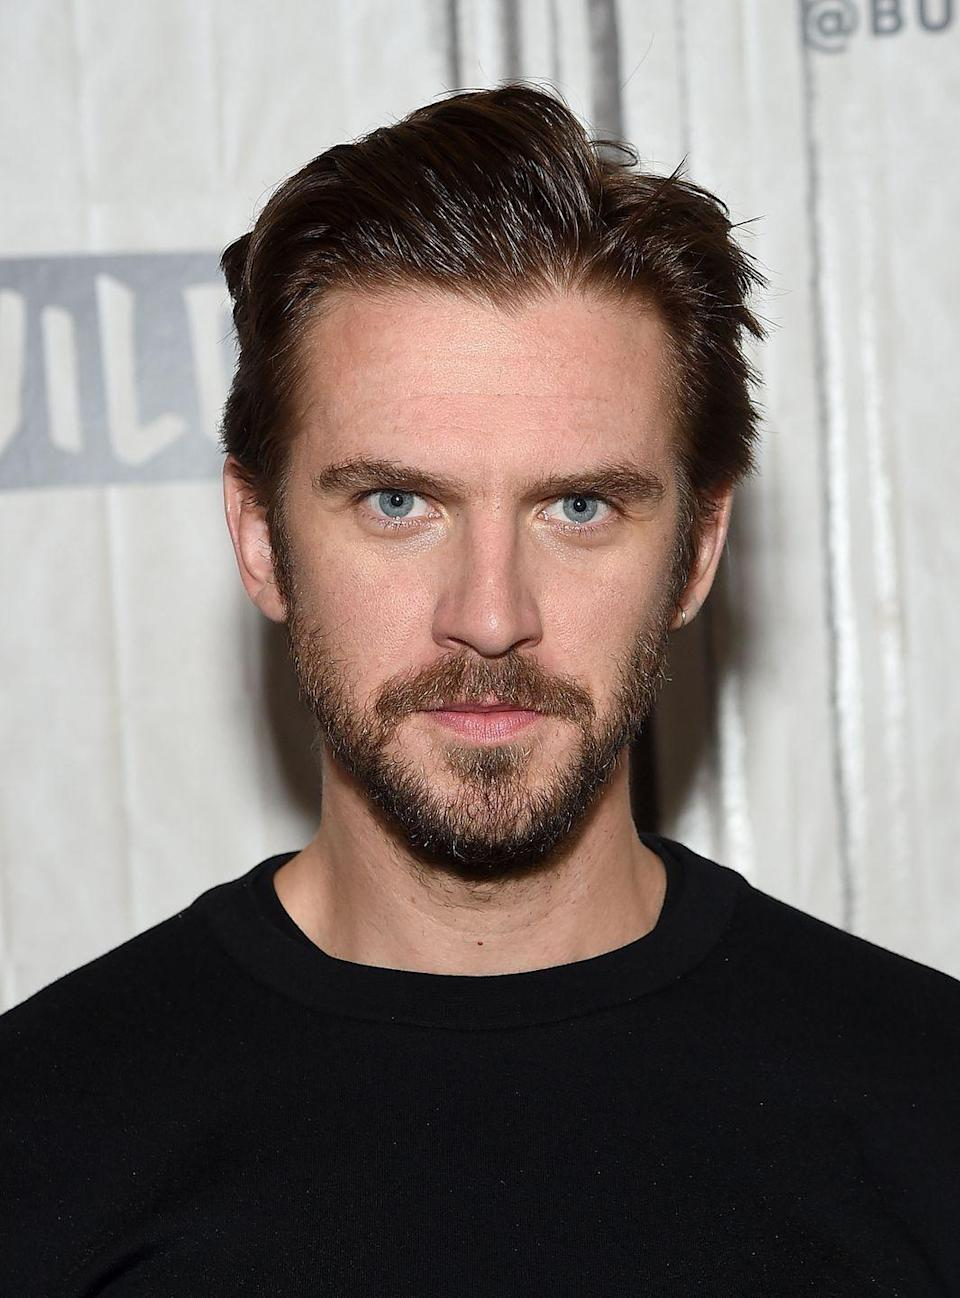 """<p>Sure, everyone loves Christmas, but not everyone was a fan of Dan Stevens in <em>The Man Who Invented Christmas. </em>The <em>Downton Abbey </em>actor starred as Charles Dickens in the December release, which performed...how do we put this...<a href=""""https://www.boxofficemojo.com/release/rl235111937/?ref_=bo_da_table_12"""" rel=""""nofollow noopener"""" target=""""_blank"""" data-ylk=""""slk:horribly in the box office"""" class=""""link rapid-noclick-resp"""">horribly in the box office</a>. </p>"""